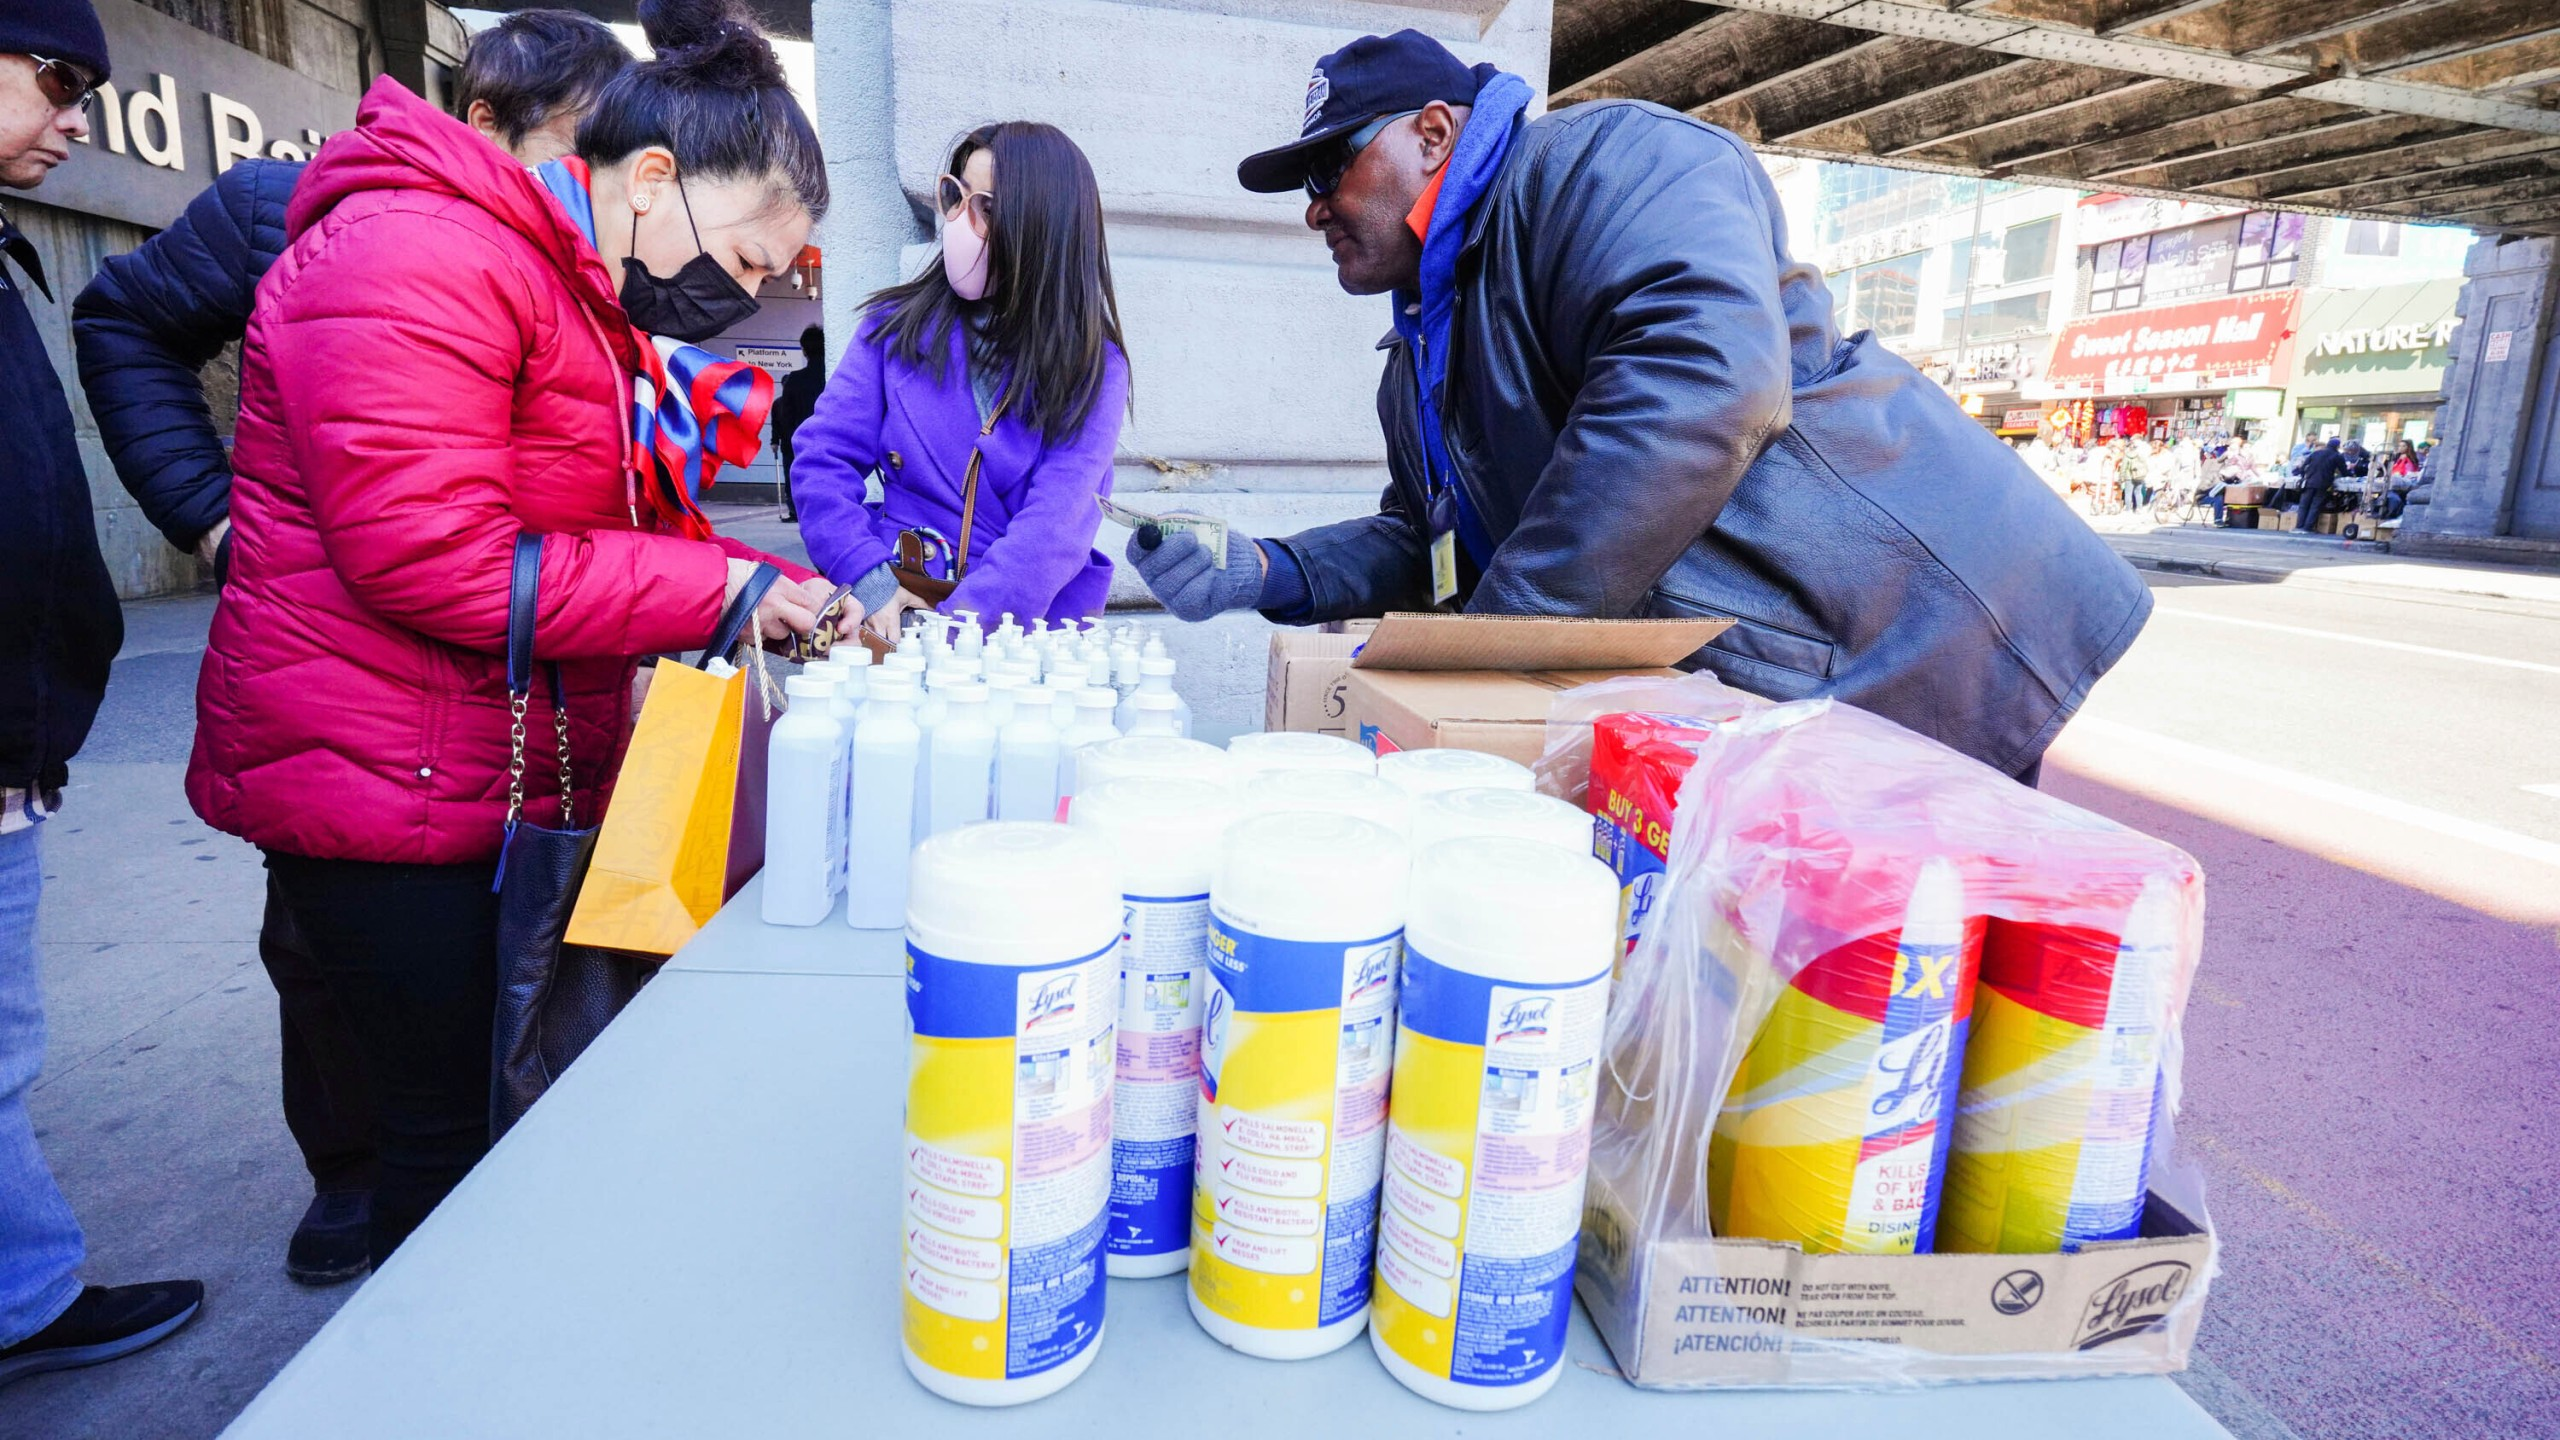 People wear protective masks to fend off the Coronavirus, while street vendors pedal masks, hand sanitizer and other disinfecting products in Queens, New York. (John Nacion/STAR MAX/IPx/AP)